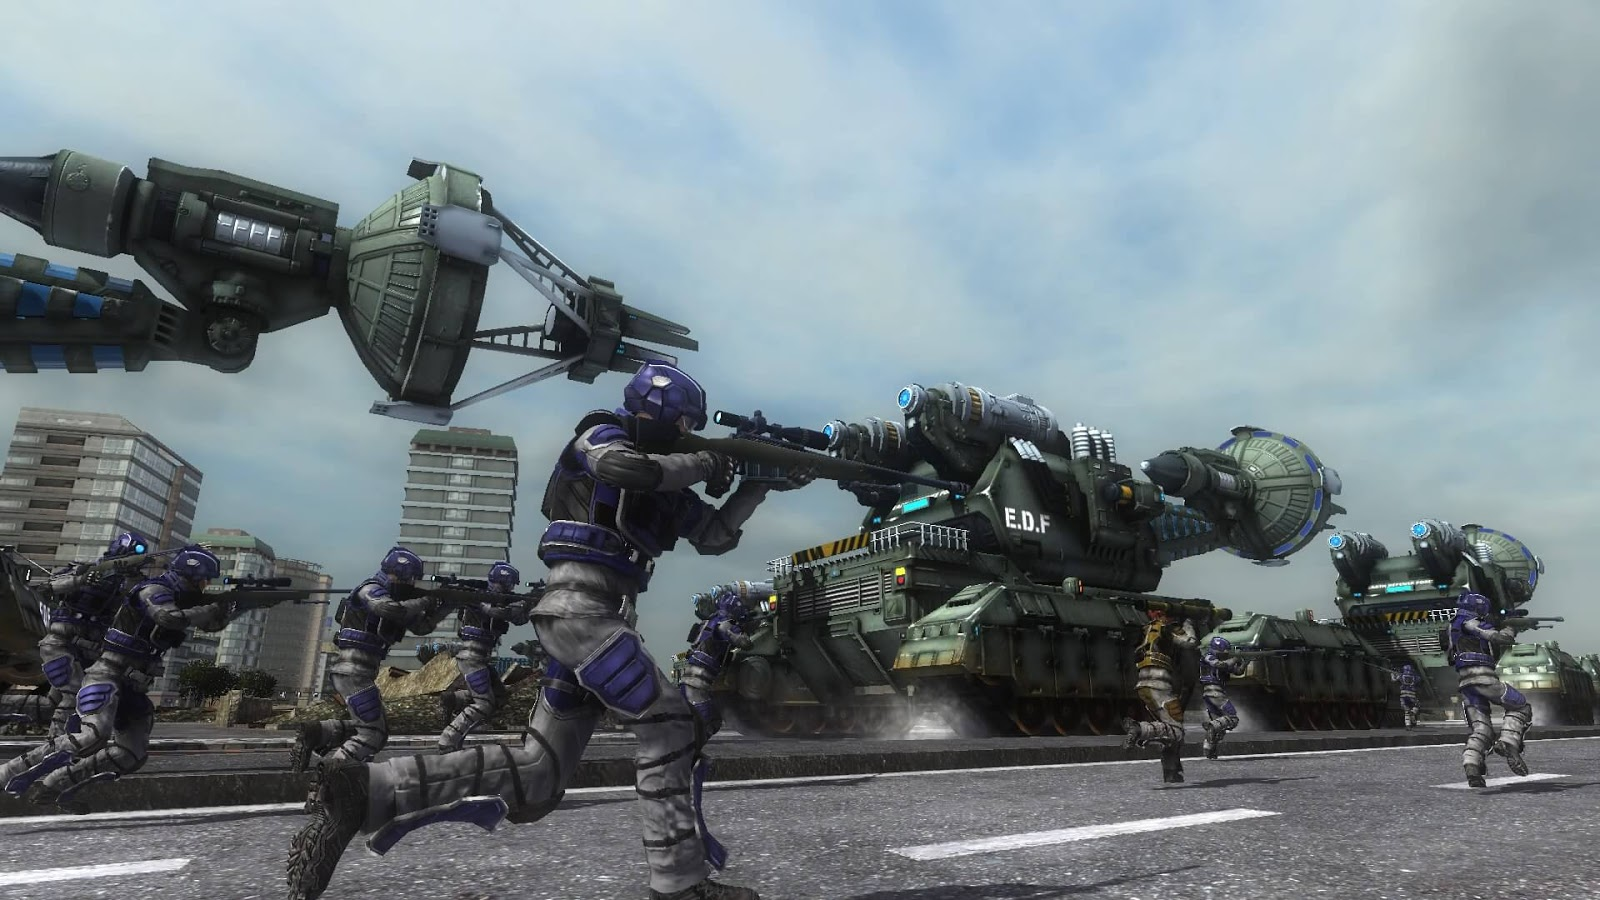 Earth Defense Force 5 Launched On Steam